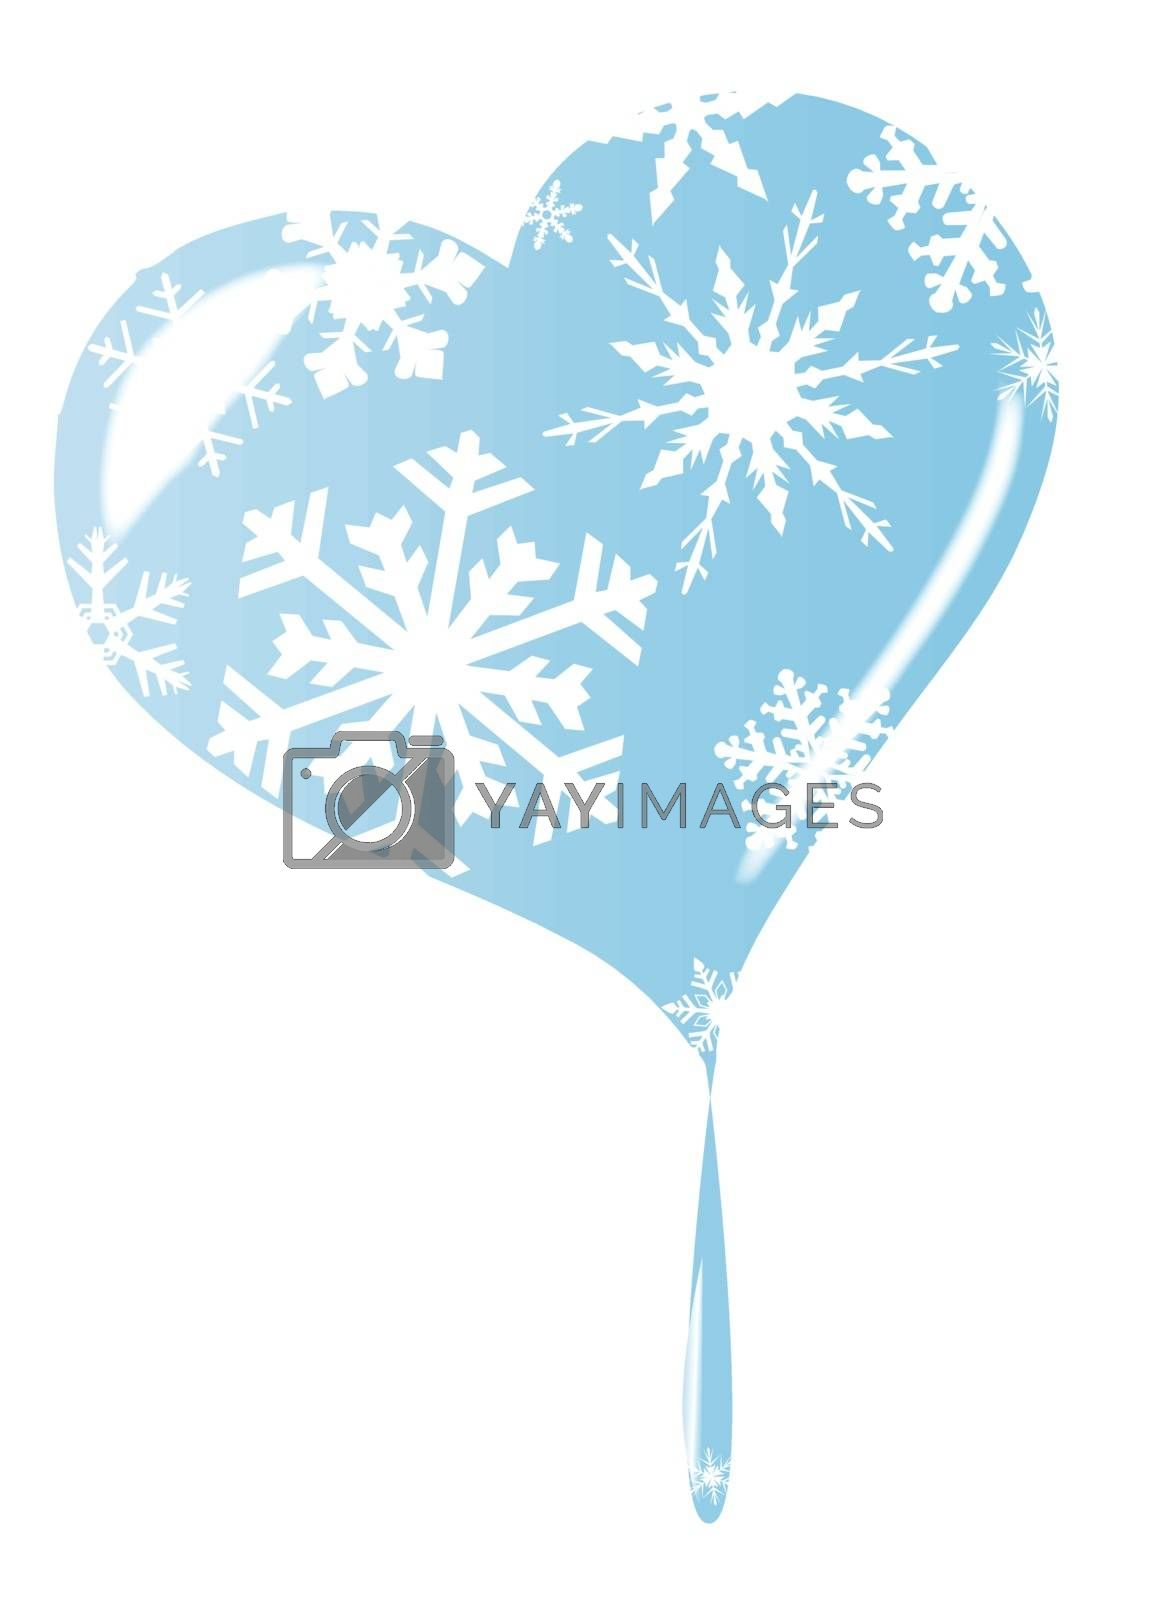 A cold winter melting frozen heart with snowflakes over a white background